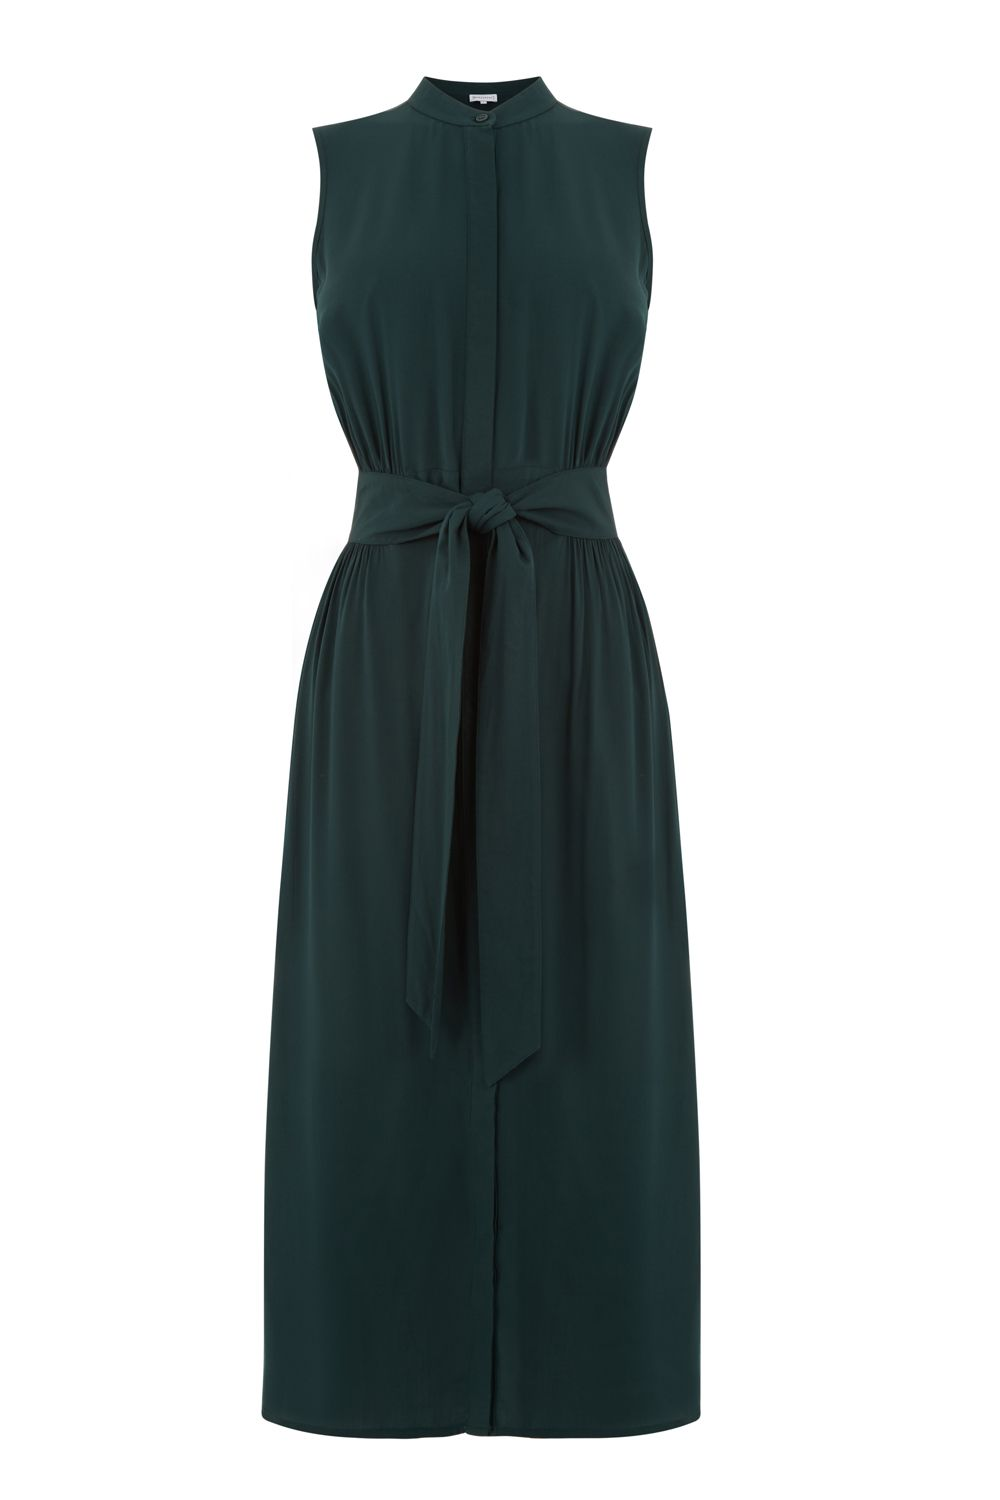 Warehouse Open Back Sleeveless Dress, Dark Green